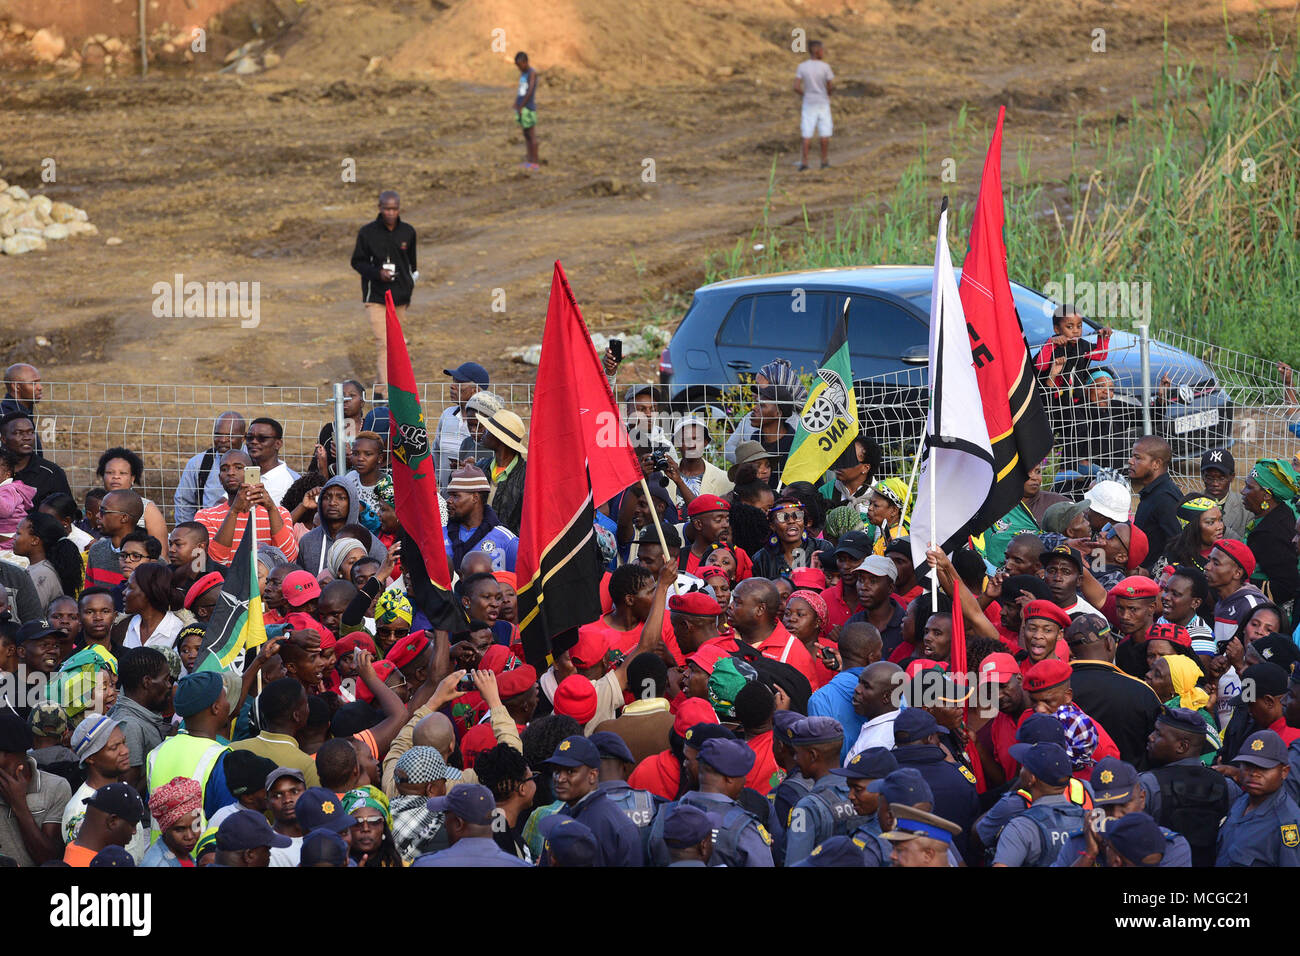 April 13 2018 Johannesburg Gauteng South Africa African Wiring A House In National Congress Anc And Economic Freedom Fighters Eff Supporters Seen Outside Late